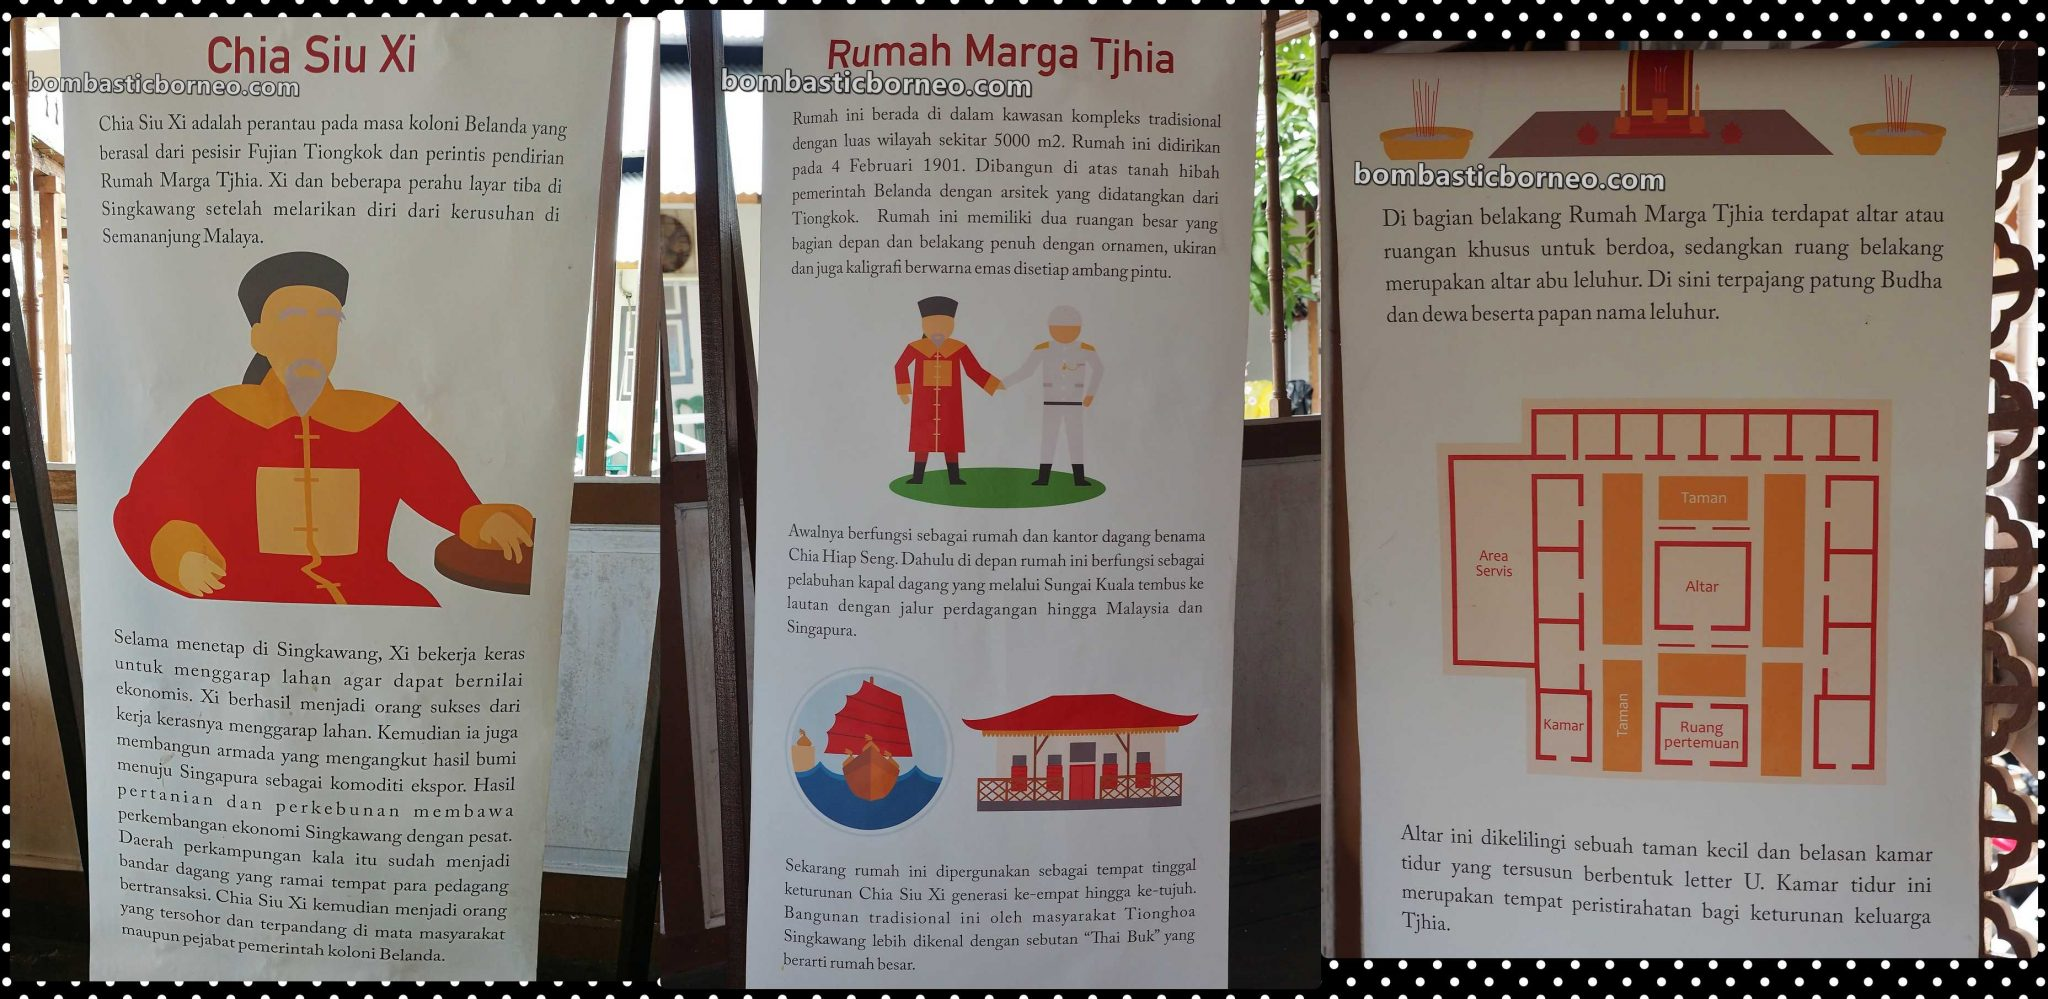 Bangunan Cagar Budaya Rumah Marga Tjhia, antique, authentic, traditional house, chinese, heritage, museum, backpackers, Indonesia, Tourism, tourist attraction, Trans Borneo, 穿越婆罗洲华侨, 西加里曼丹山口洋, 謝守時历史遗产